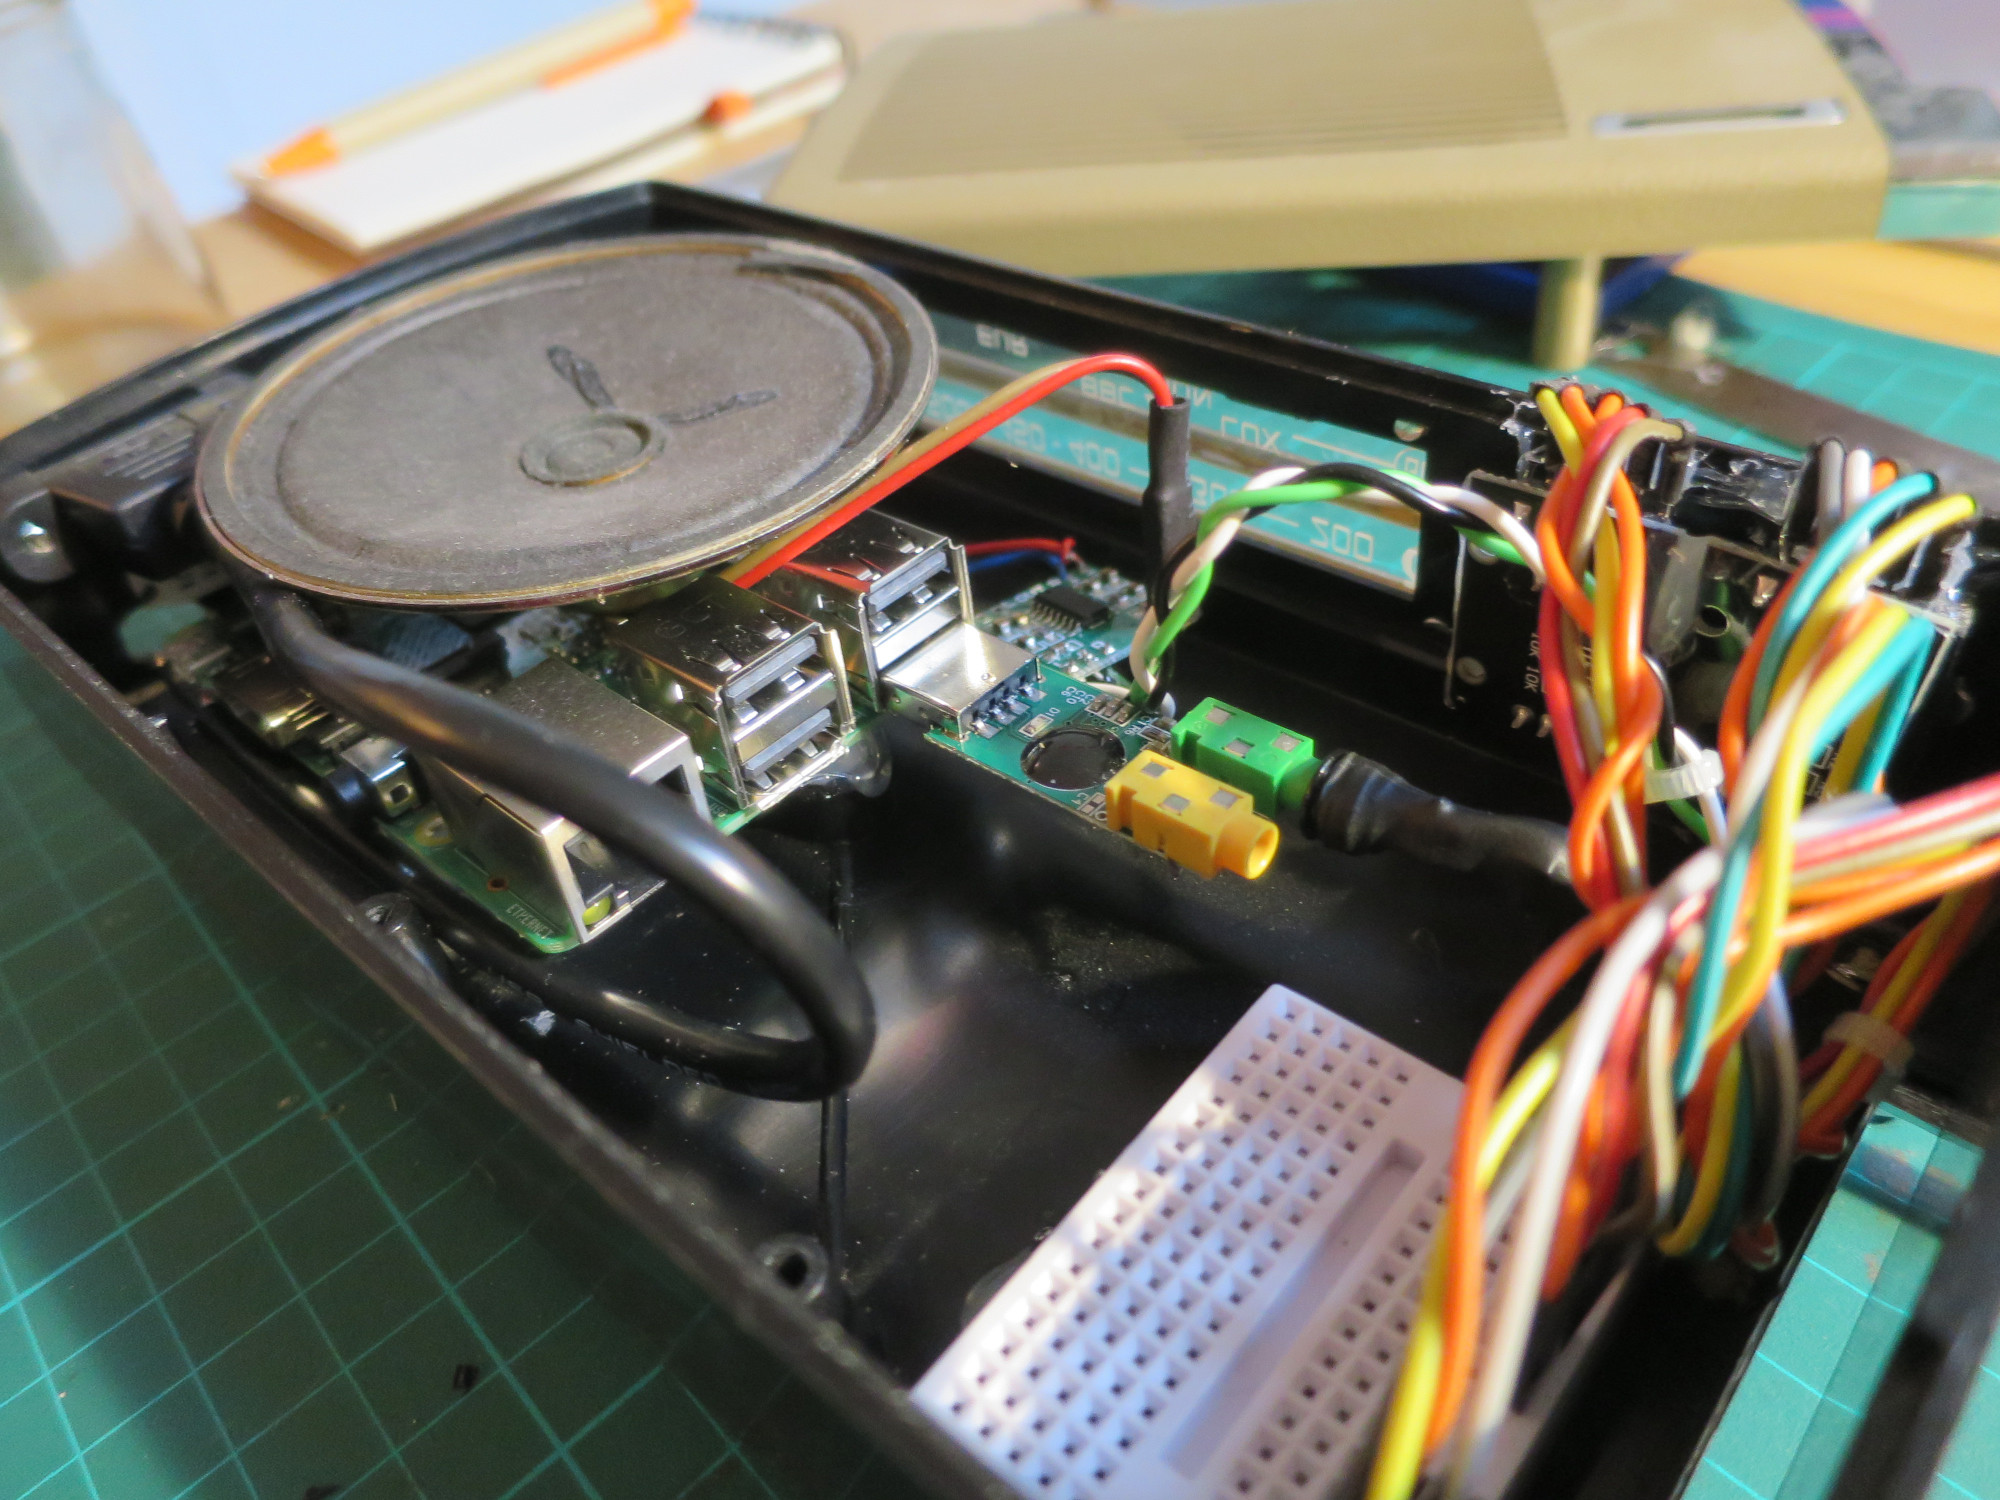 Inside the radio. Note the stripped-down USB audio card used to offload the audio processing